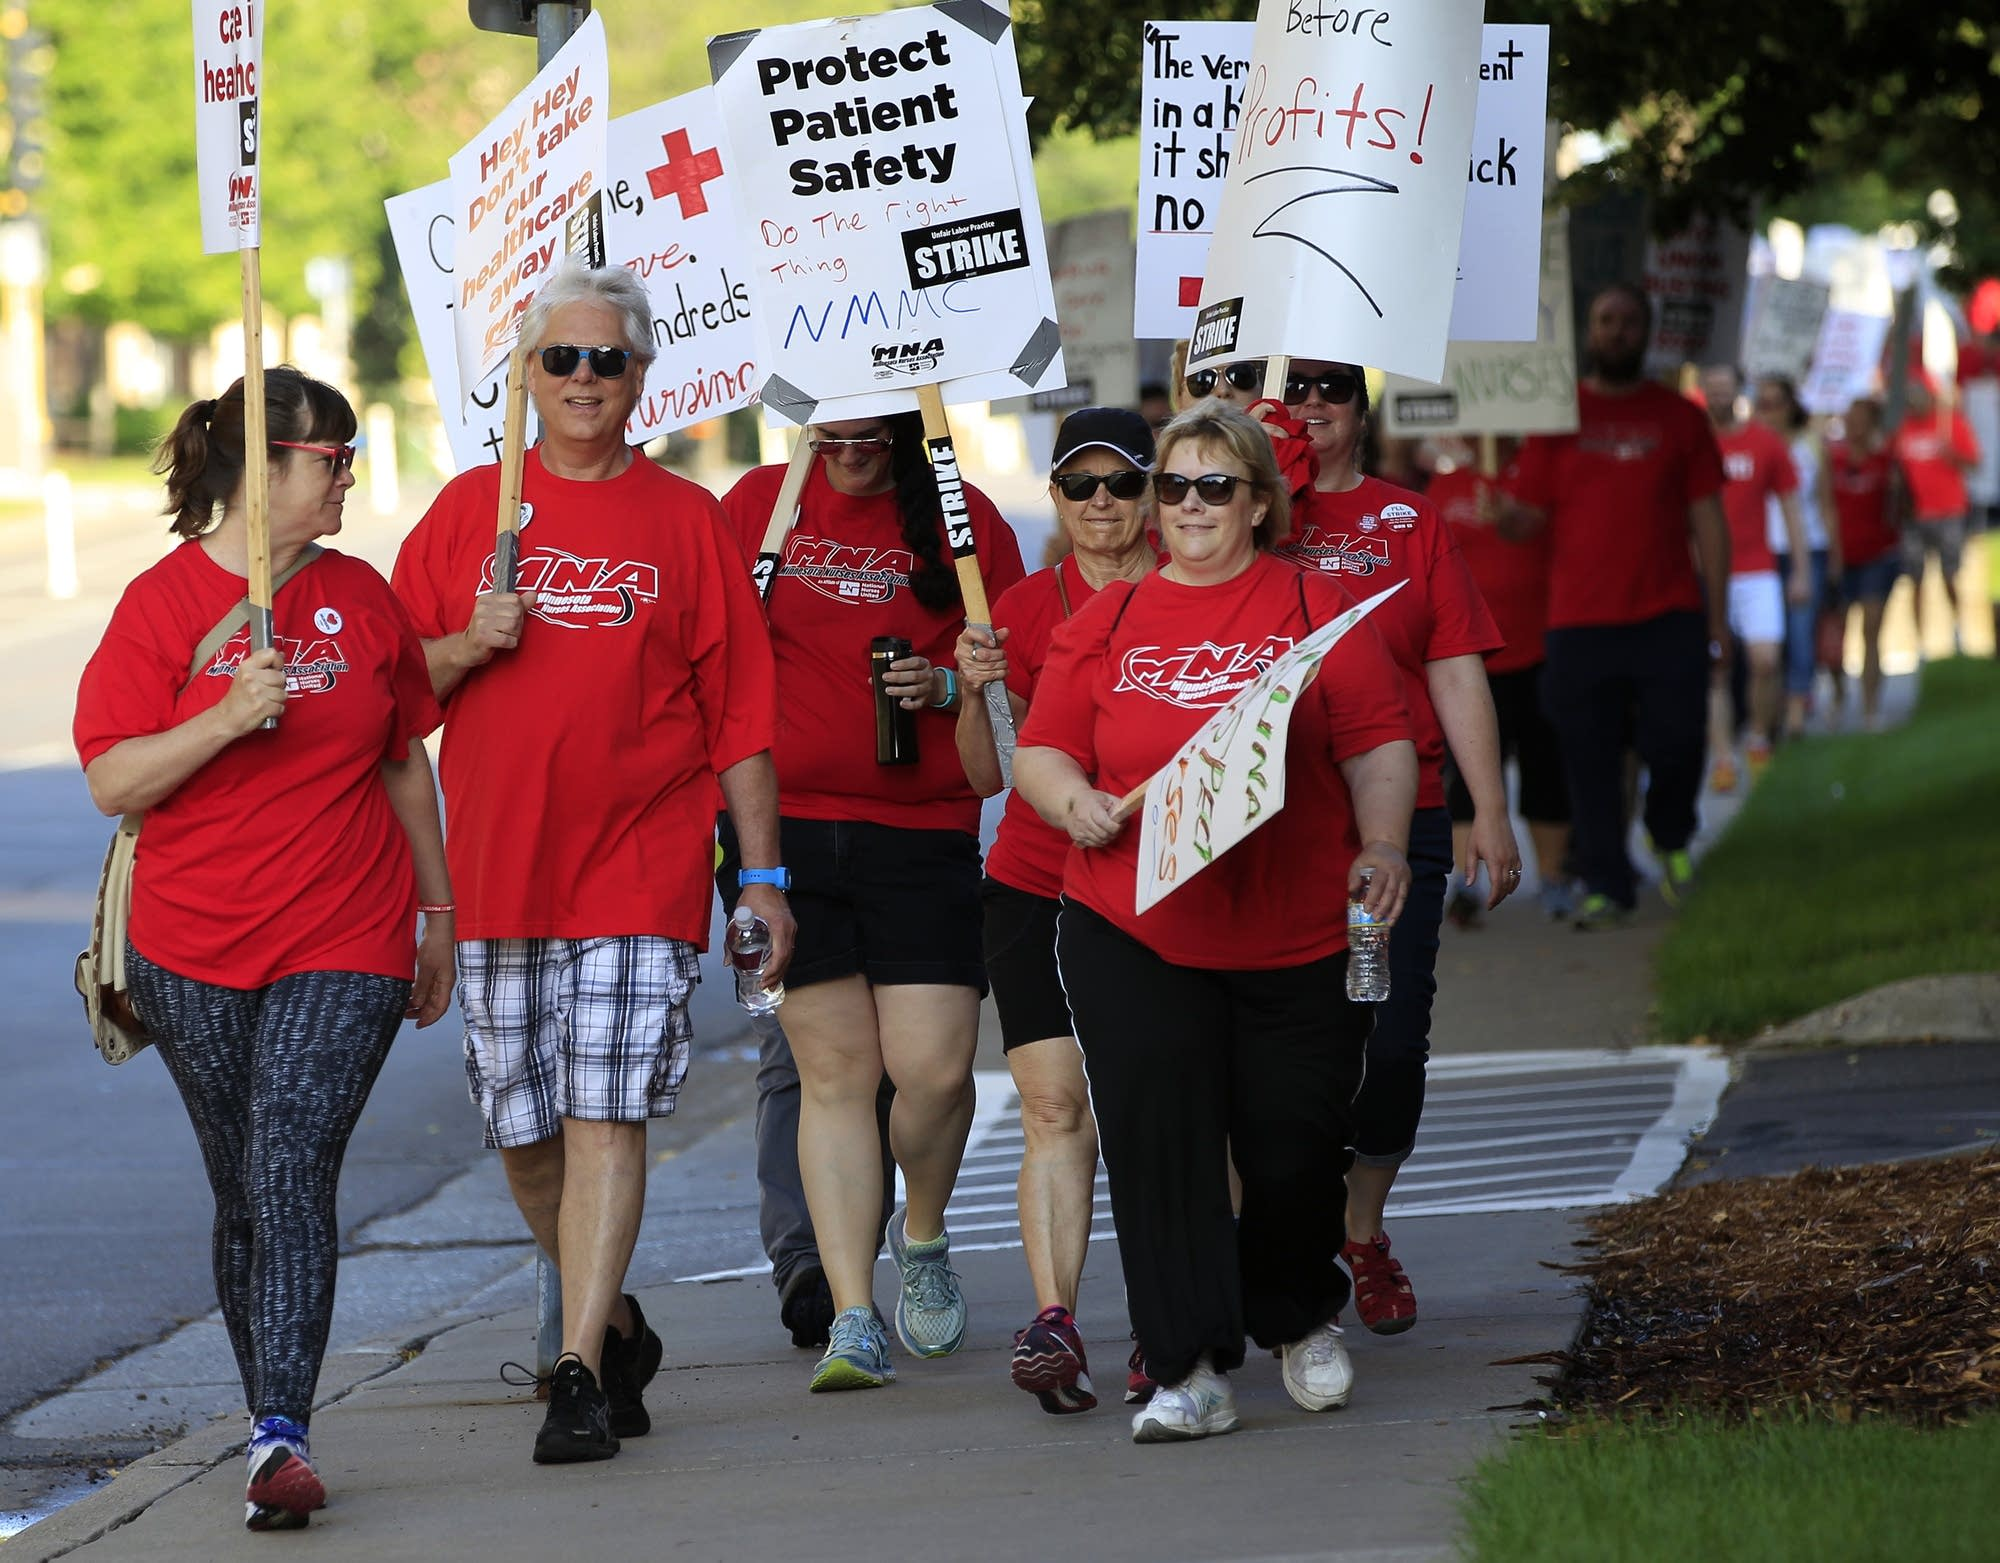 Striking nurses and supporters march.